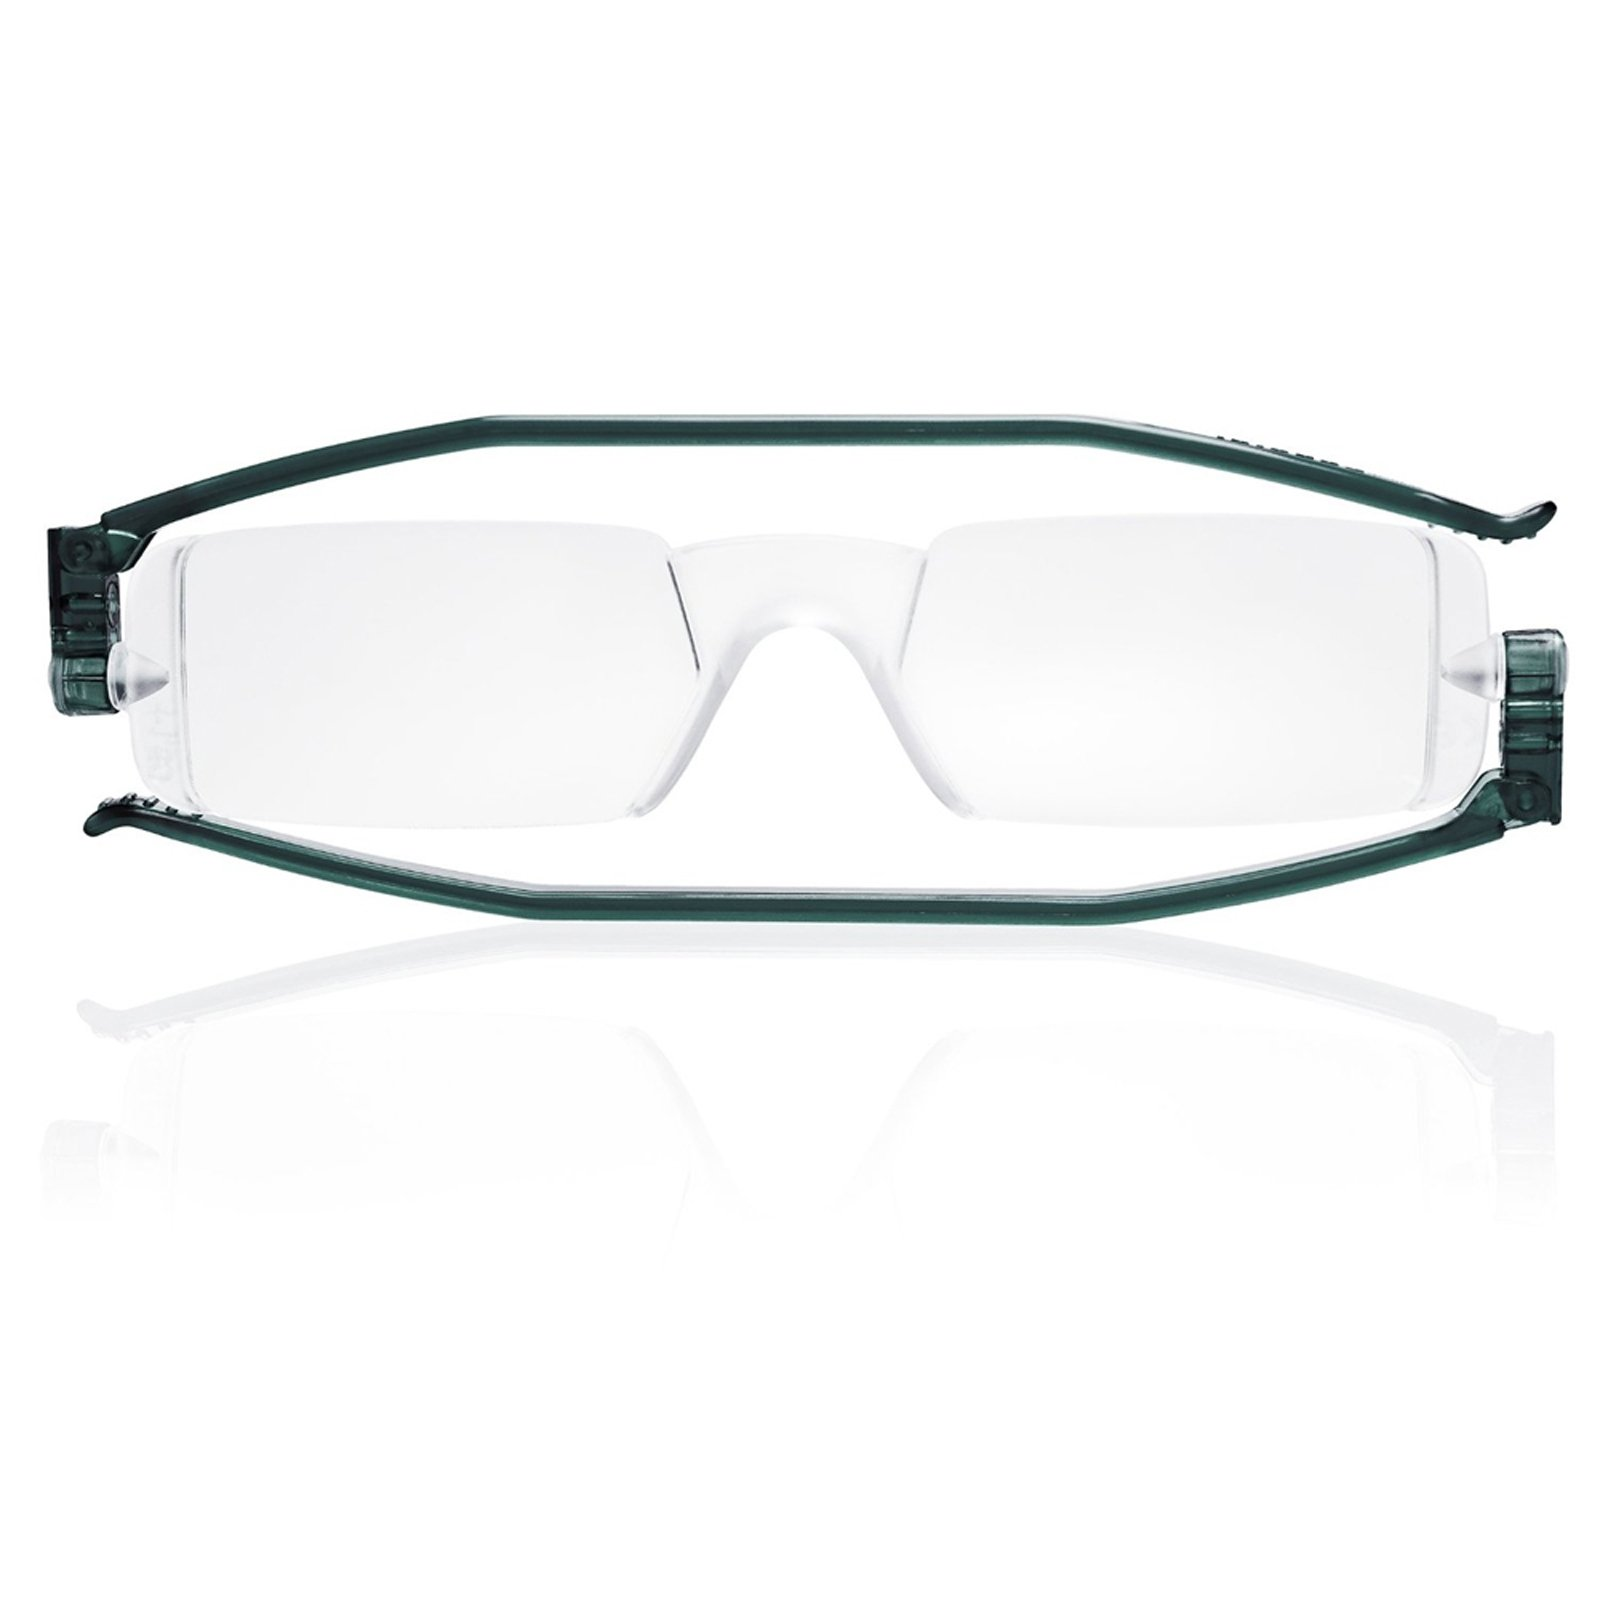 Reading Glasses Nannini Italy Vision Care Unisex Ultra Thin Readers - Grey 1.5